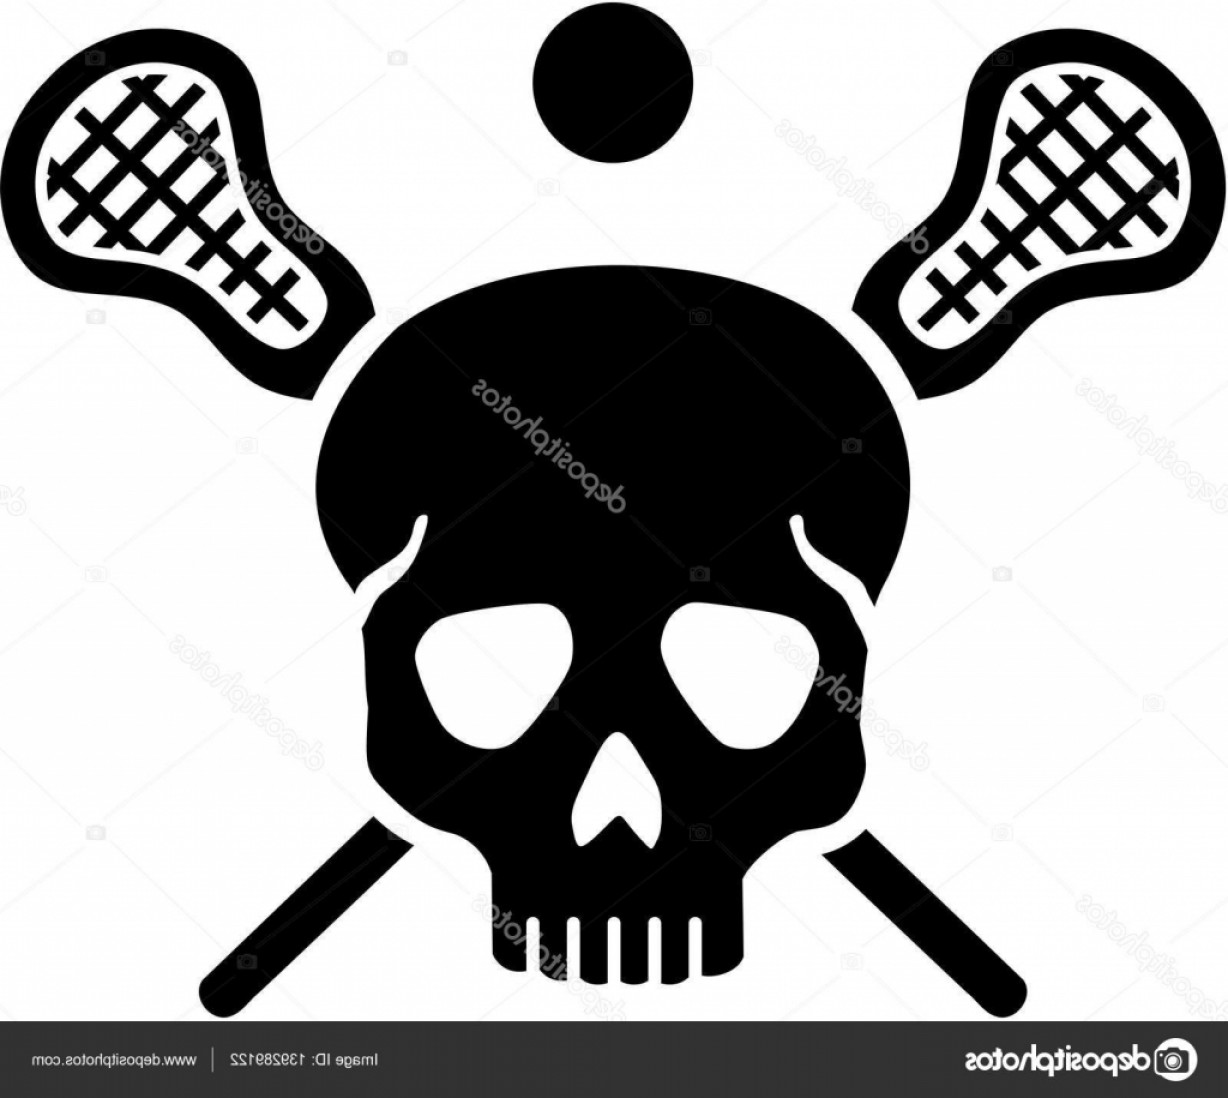 Lacrosse Stick Vector: Stock Illustration Lacrosse Skull With Crossed Sticks